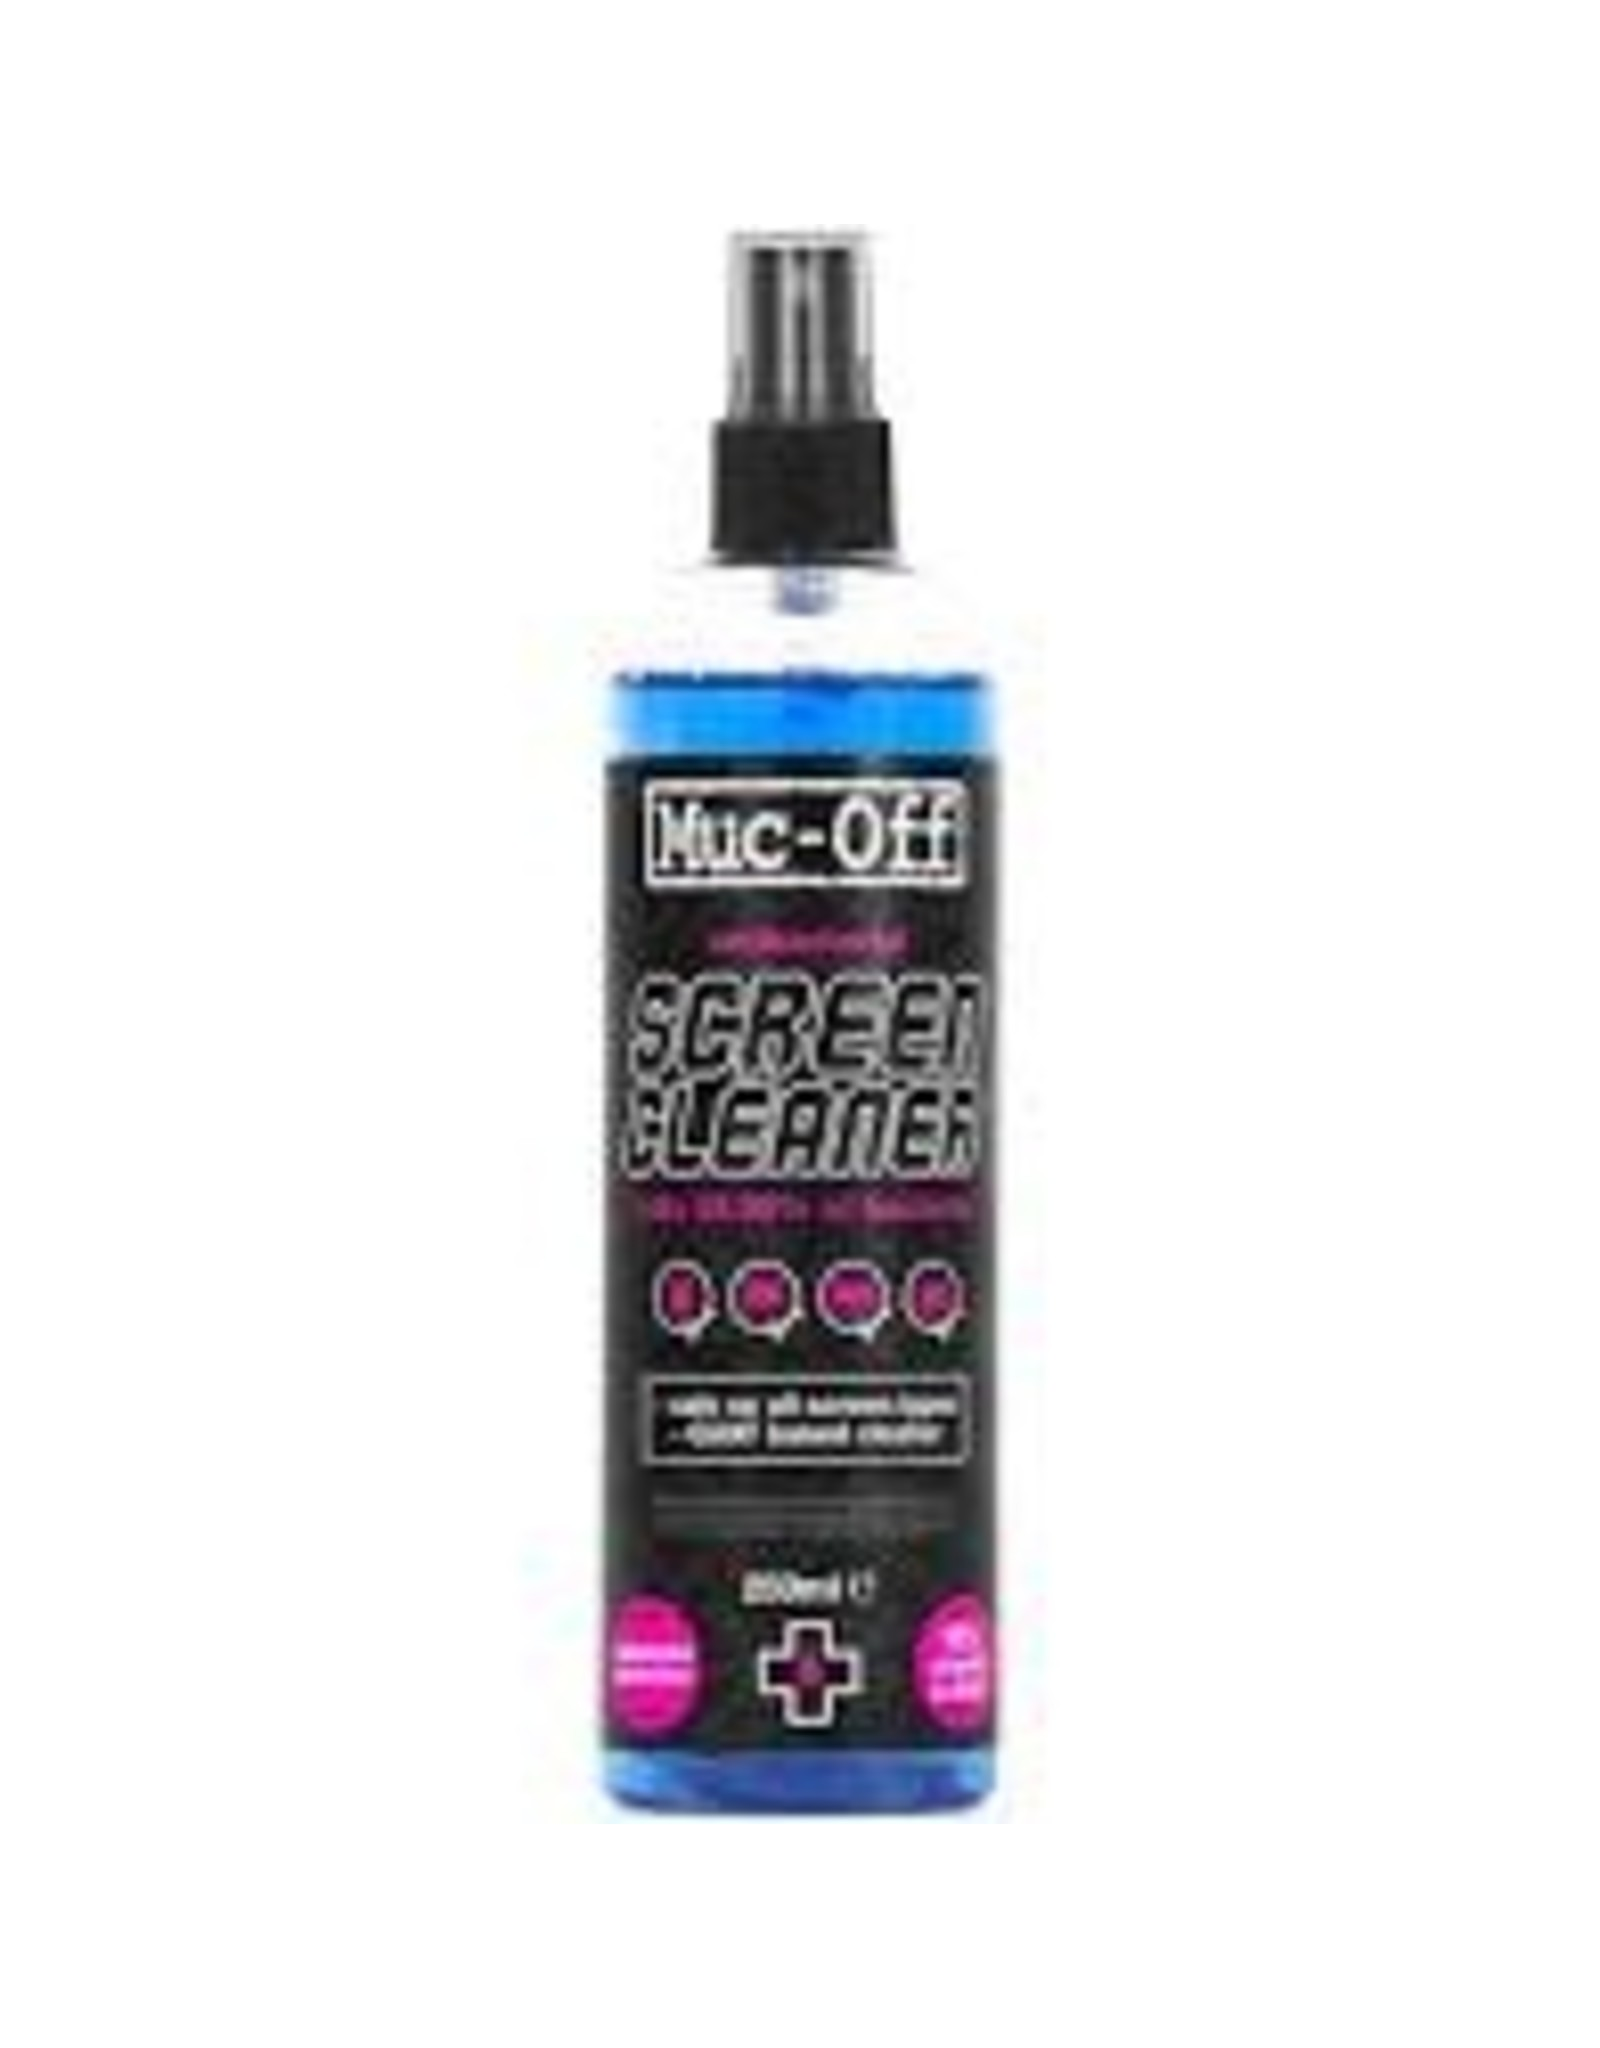 Muc-Off MCF SCREEN CLEANER 32ml